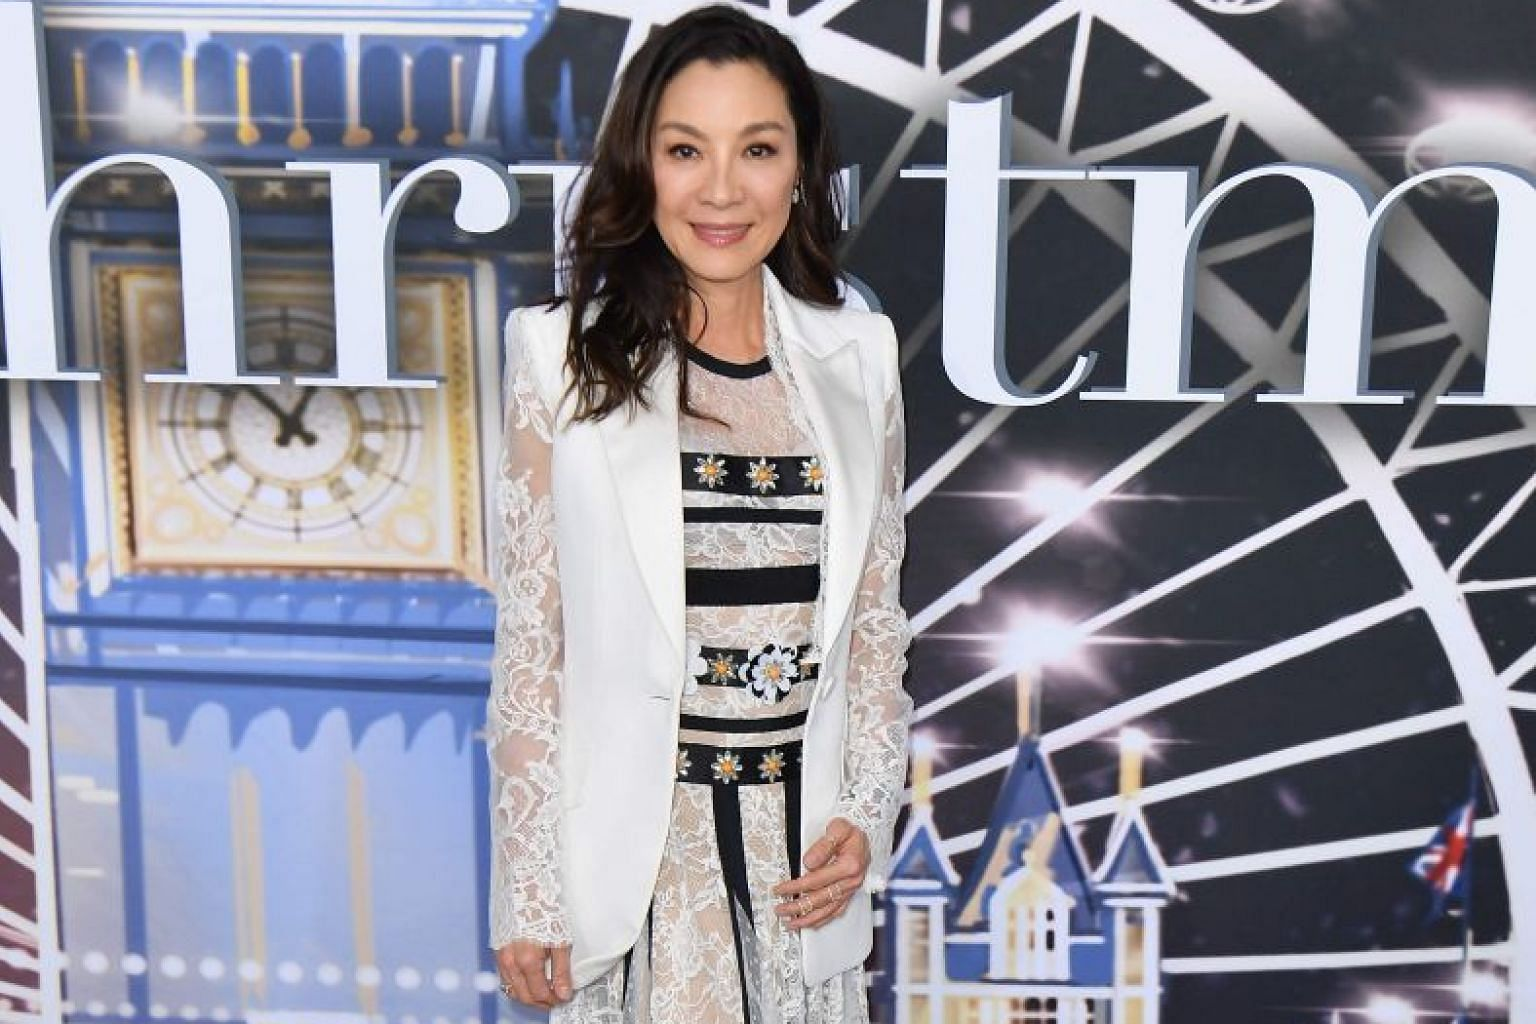 Michelle Yeoh credits luck and tenacity for her success.